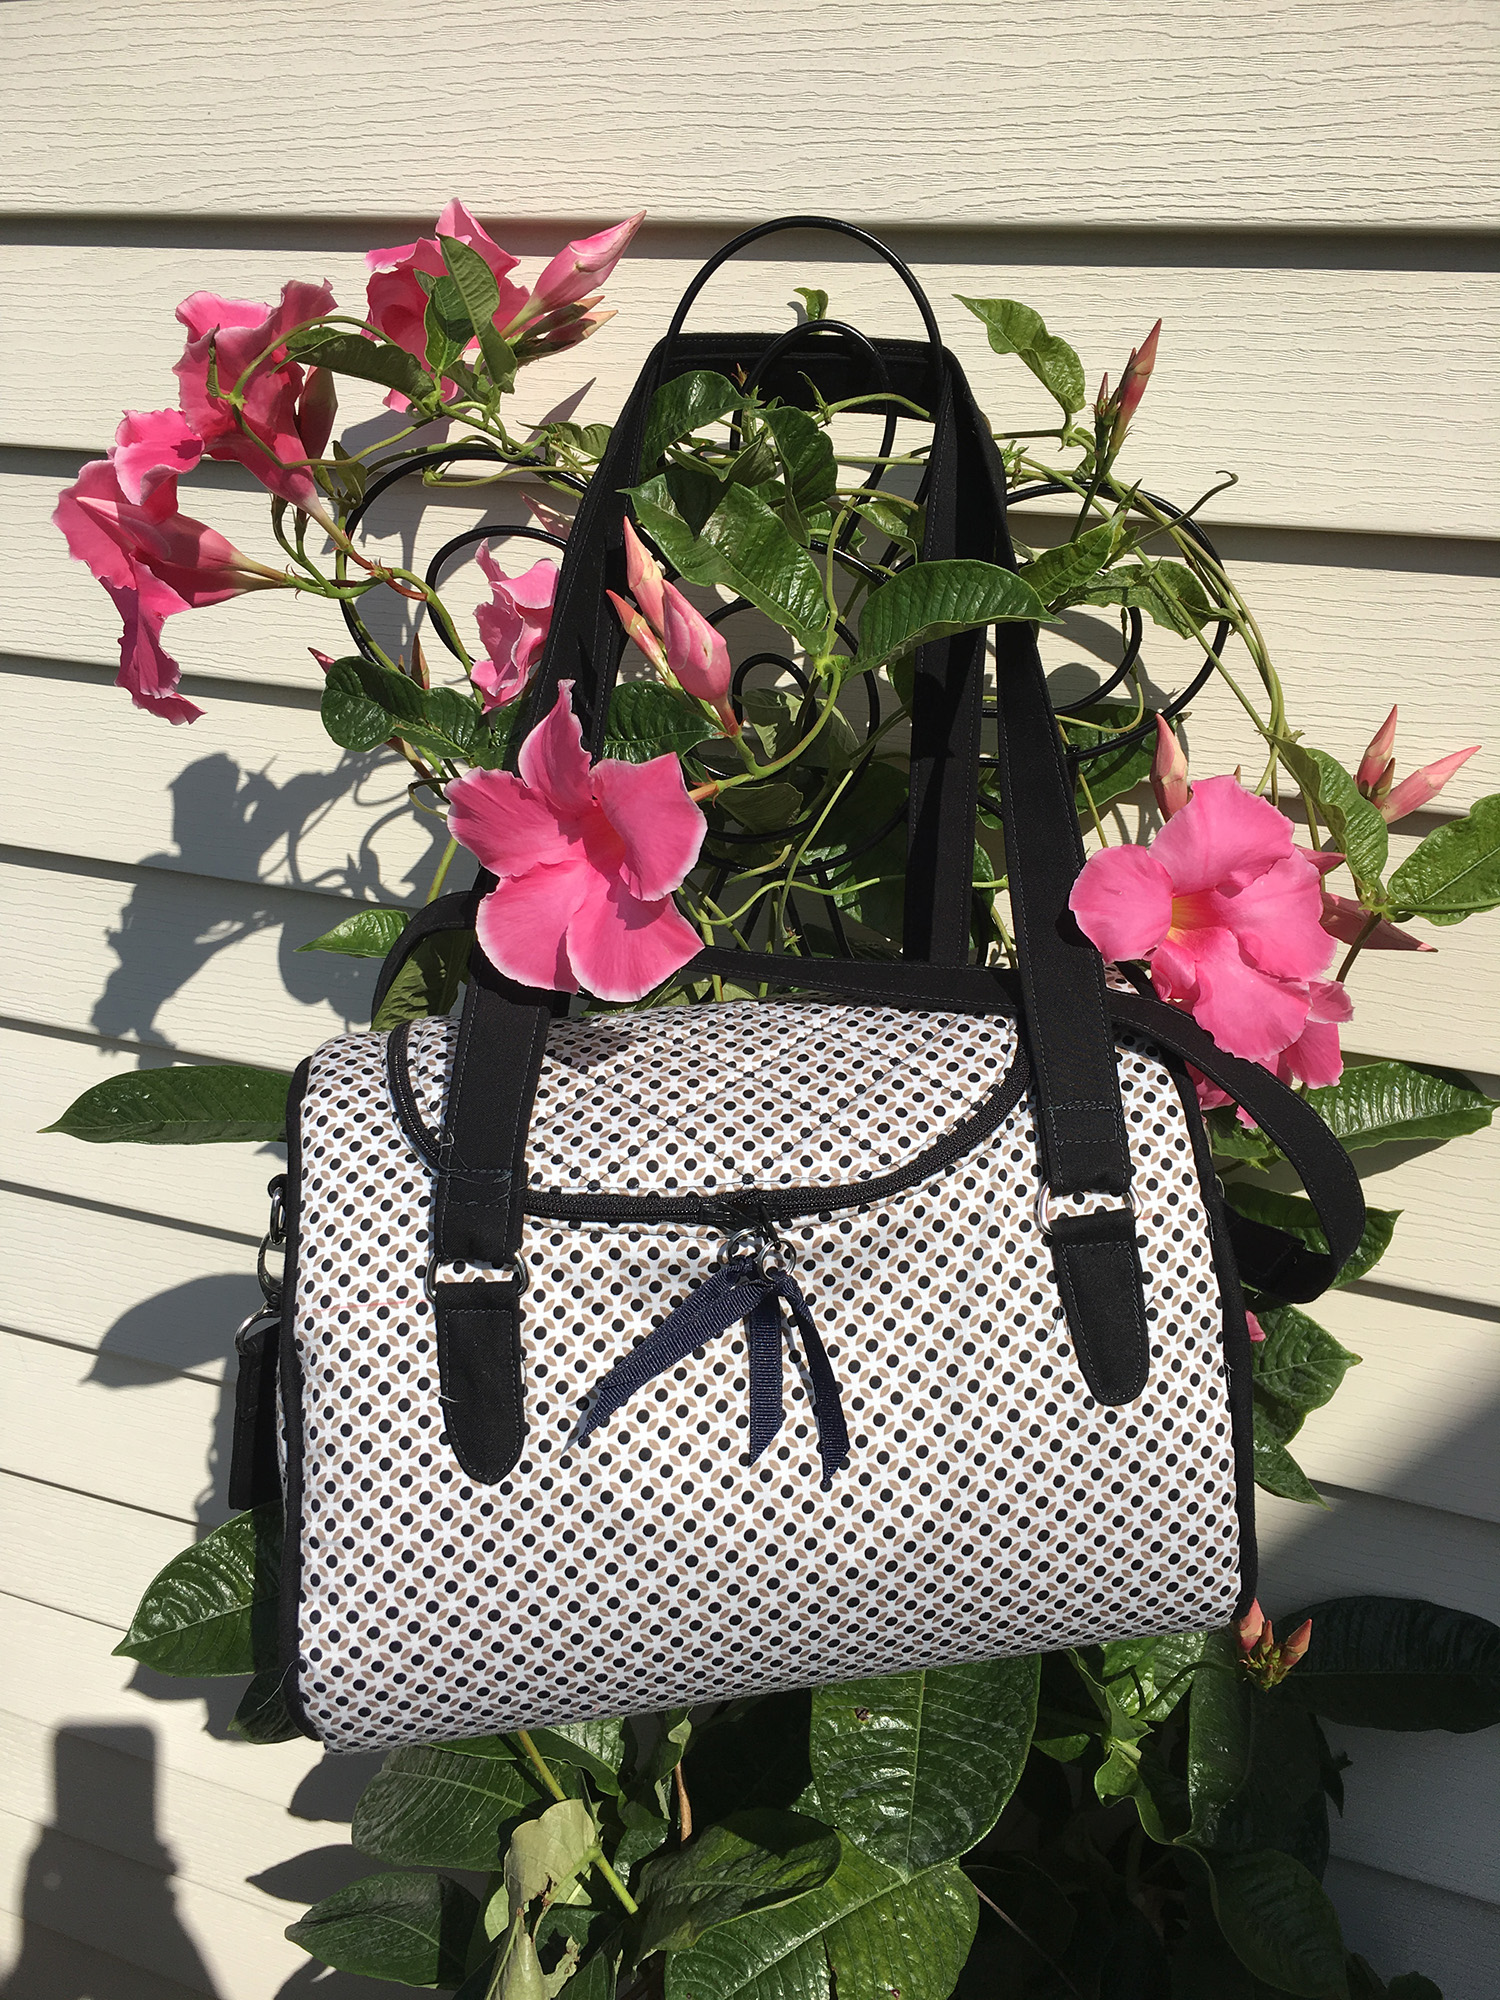 Sew Sweetness Tortoise Bag sewing pattern, sewn by Mindy